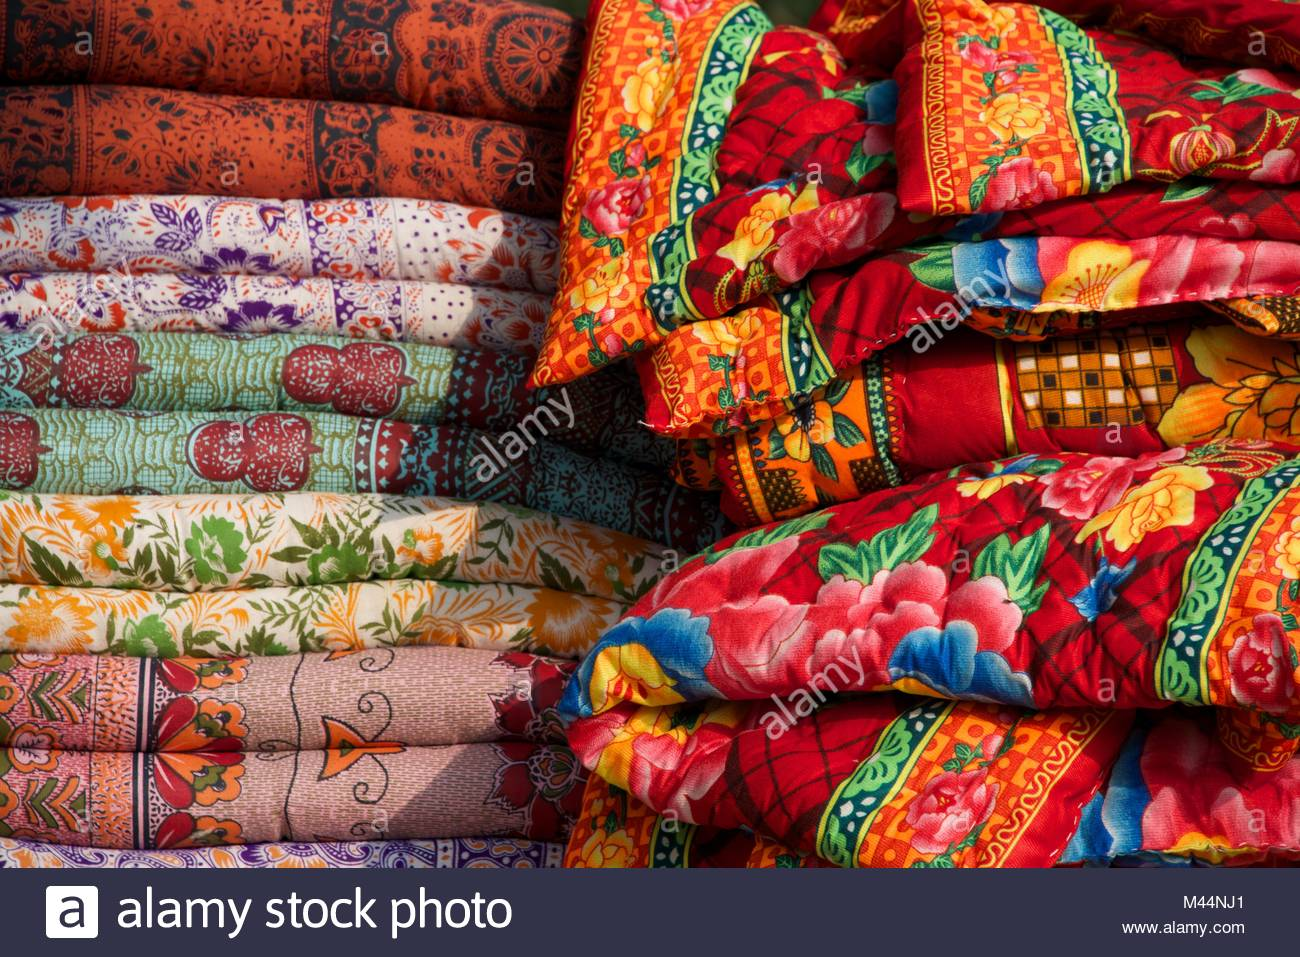 Colourful Indian cloths - Stock Image